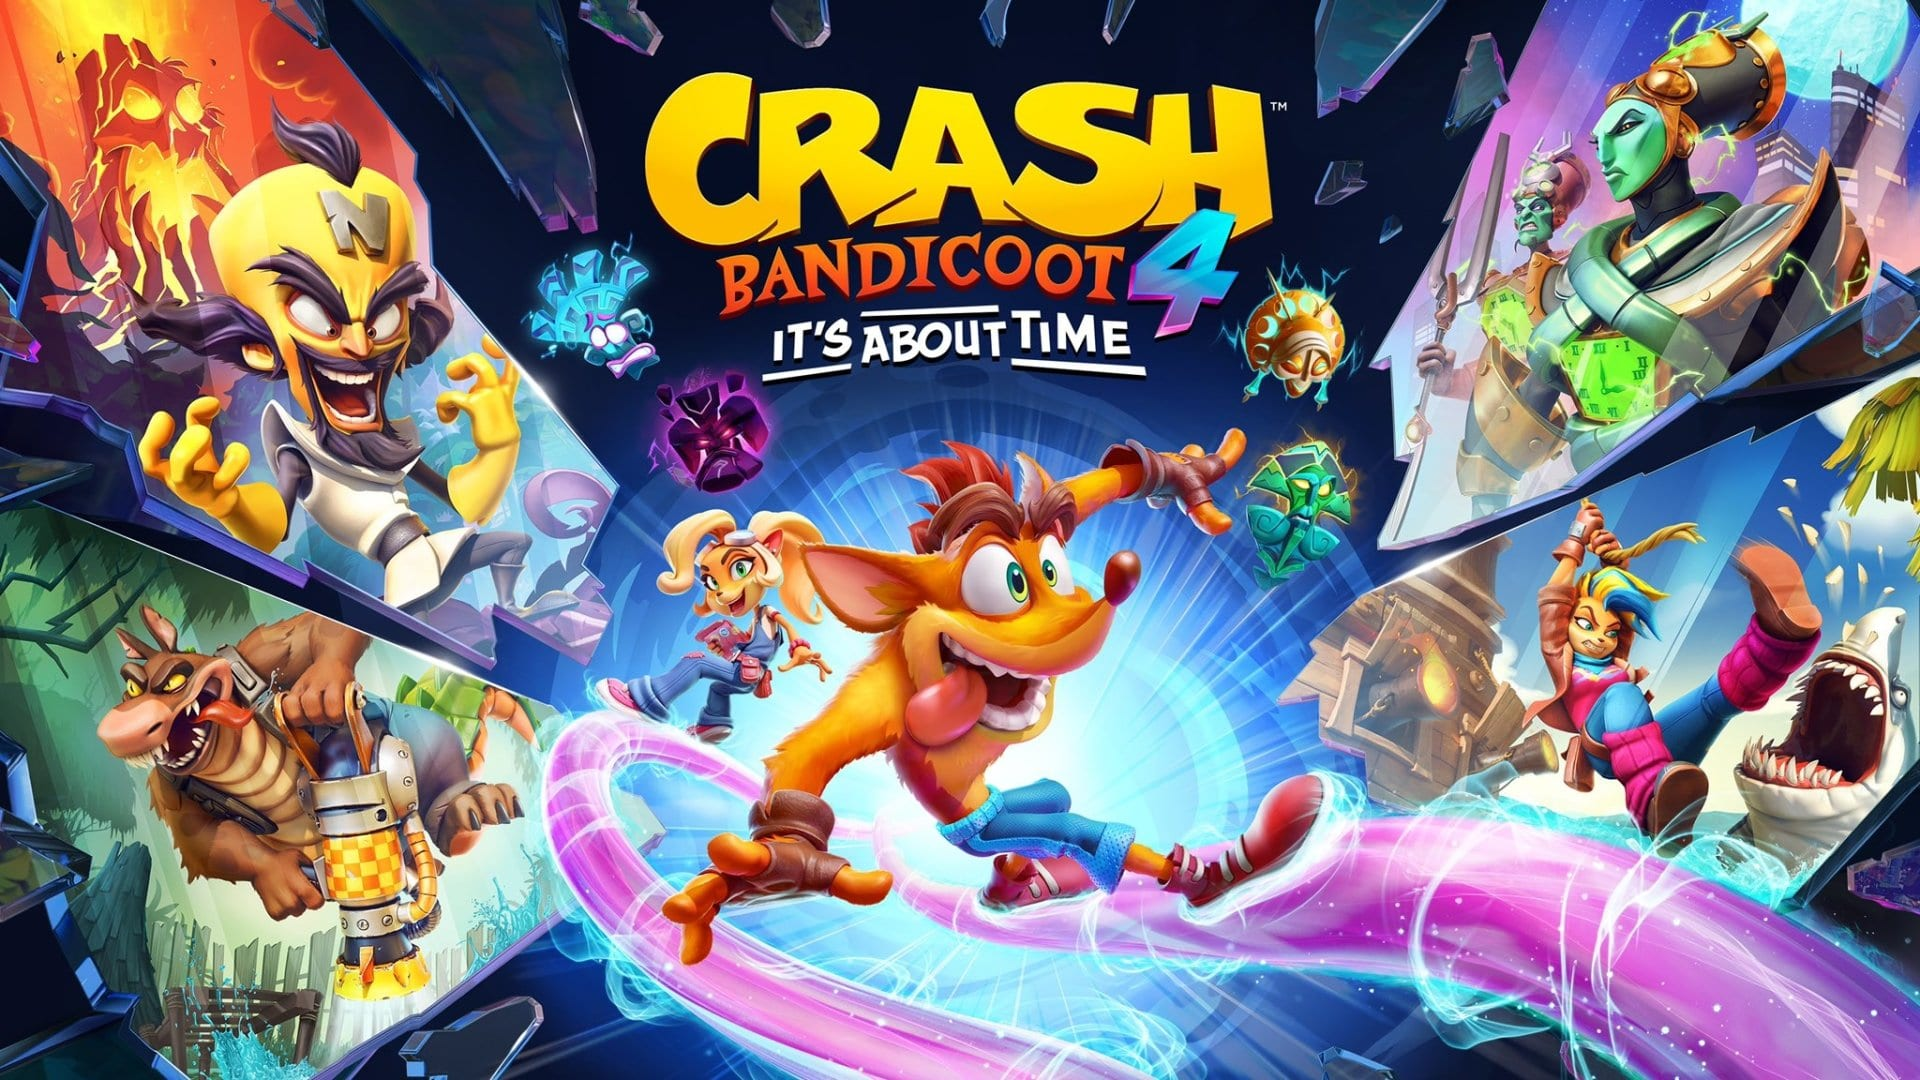 crash bandicoot 4 its about time cover art wallpaper 71949